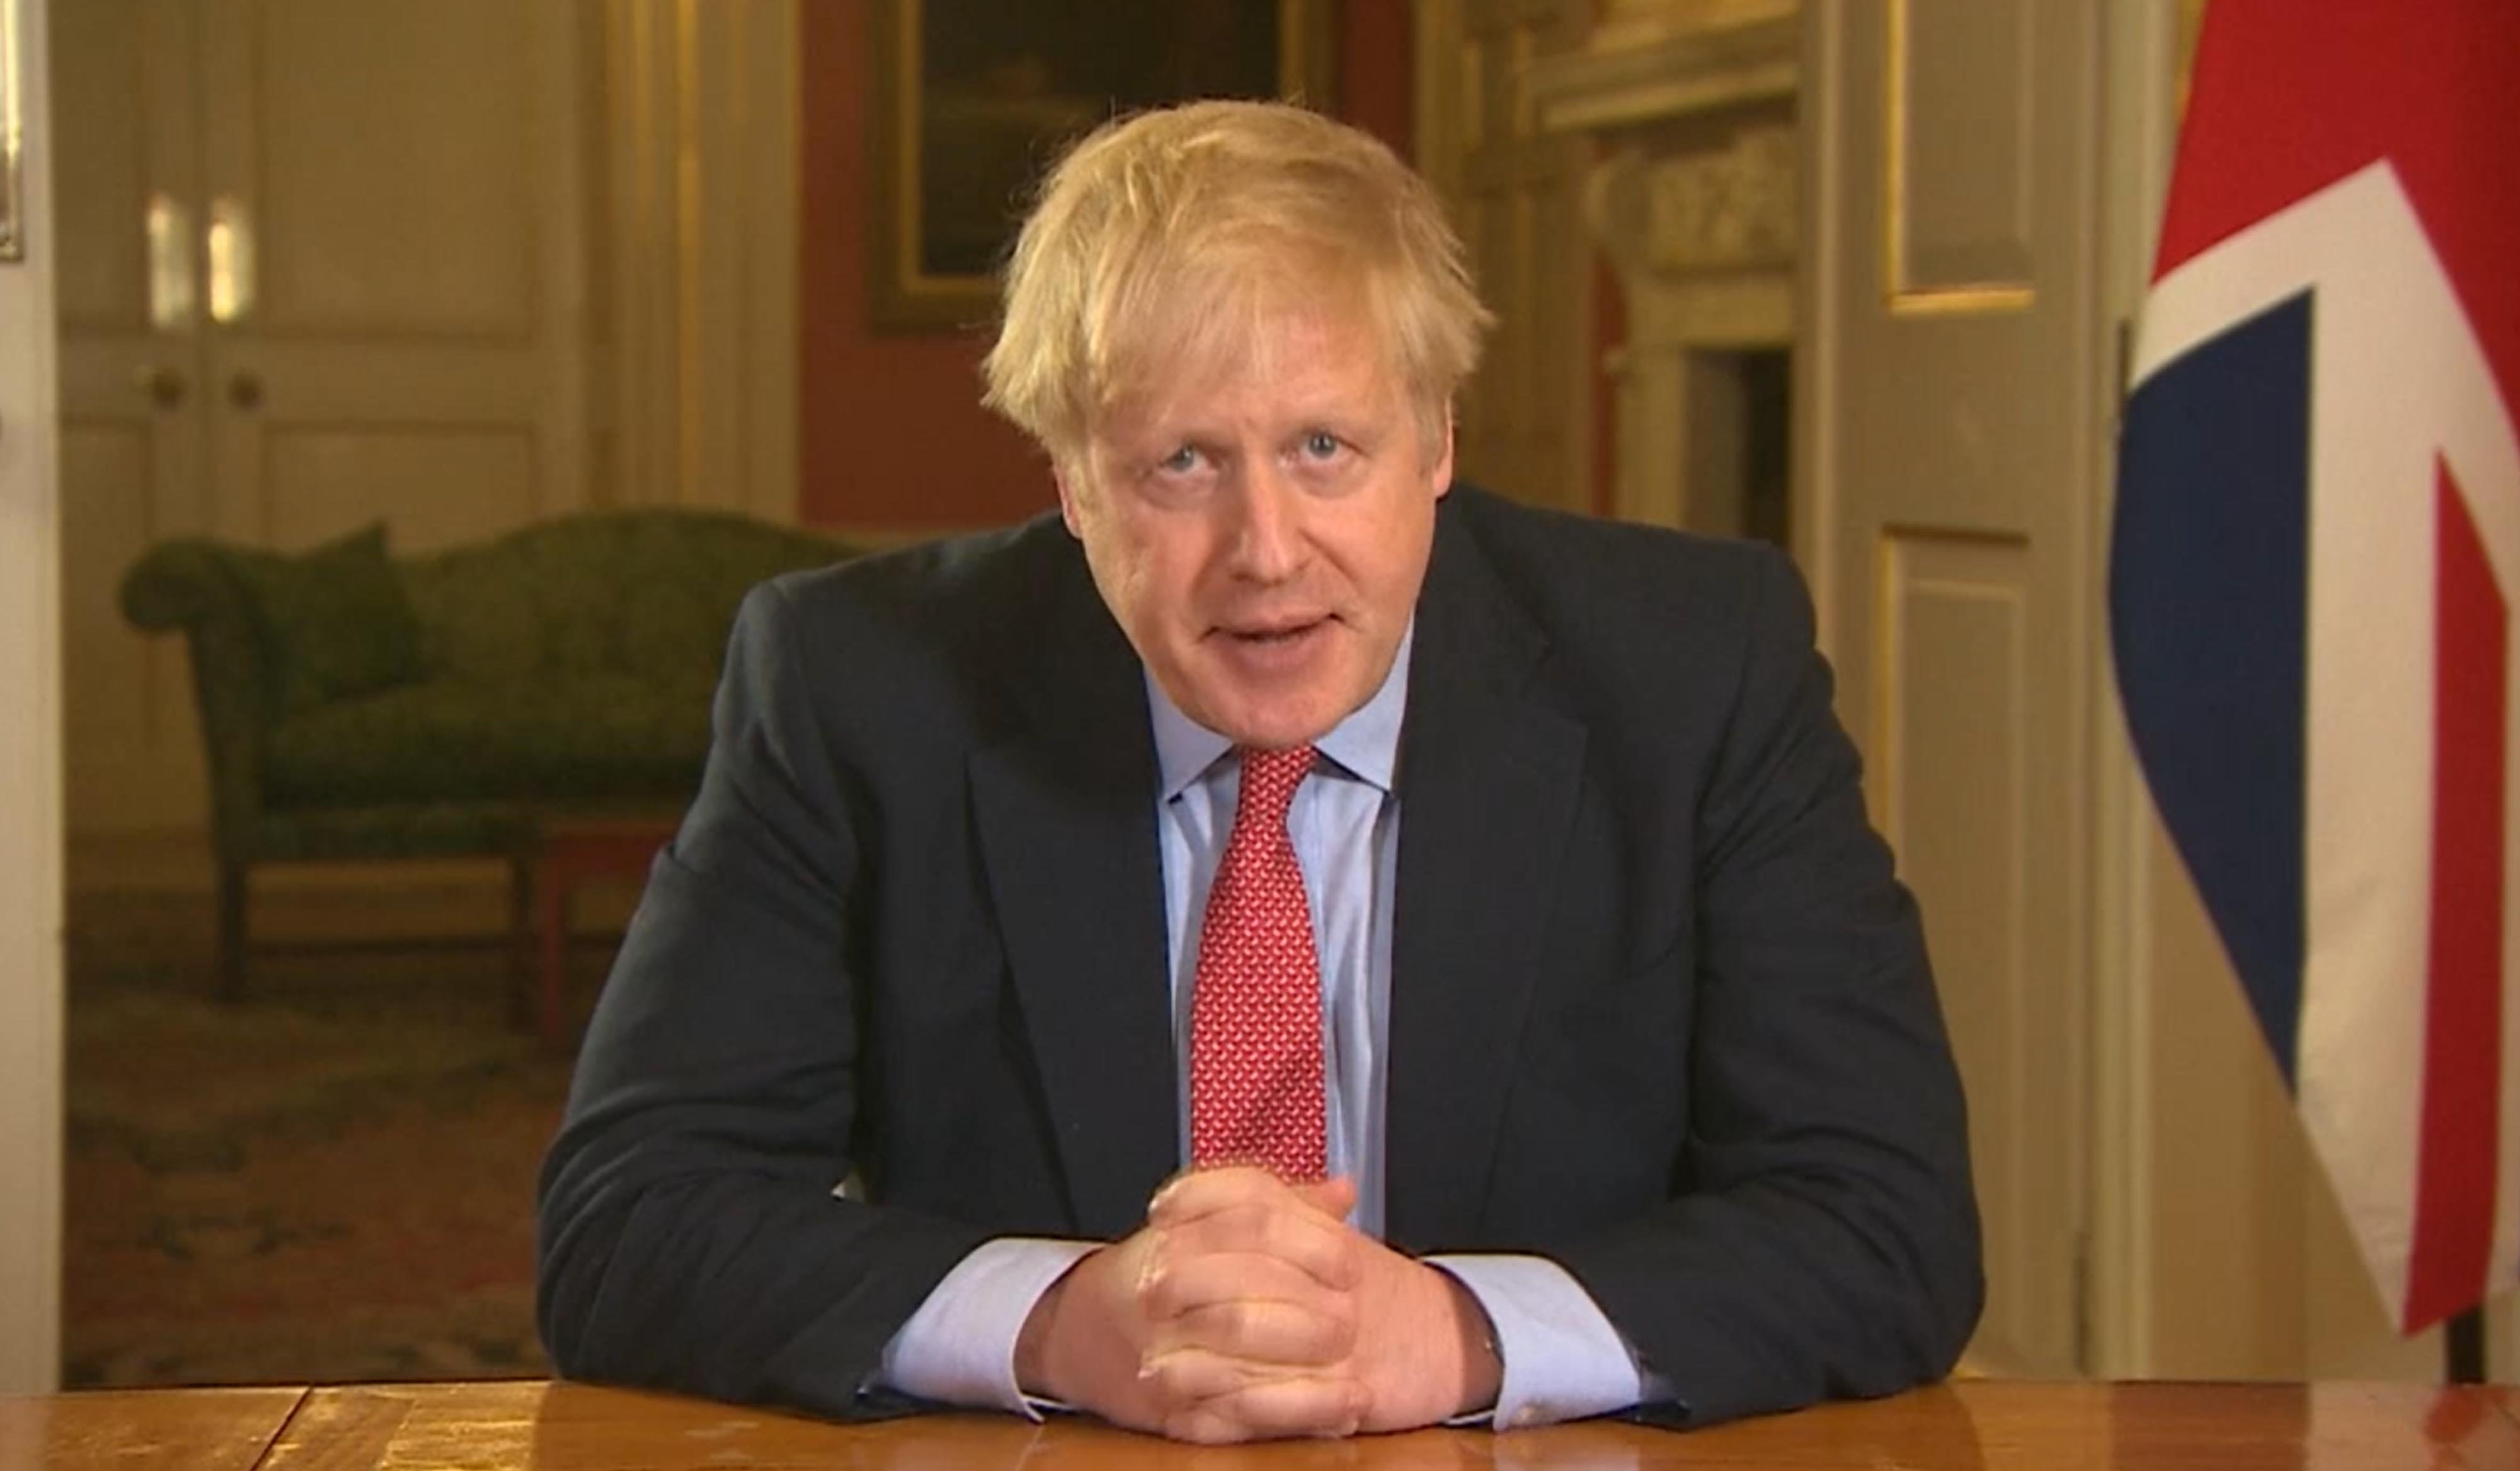 Prime Minister Boris Johnson addressing the nation from 10 Downing Street, London, as he placed the UK on lockdown as the Government seeks to stop the spread of coronavirus (COVID-19). | Source: Getty Images.